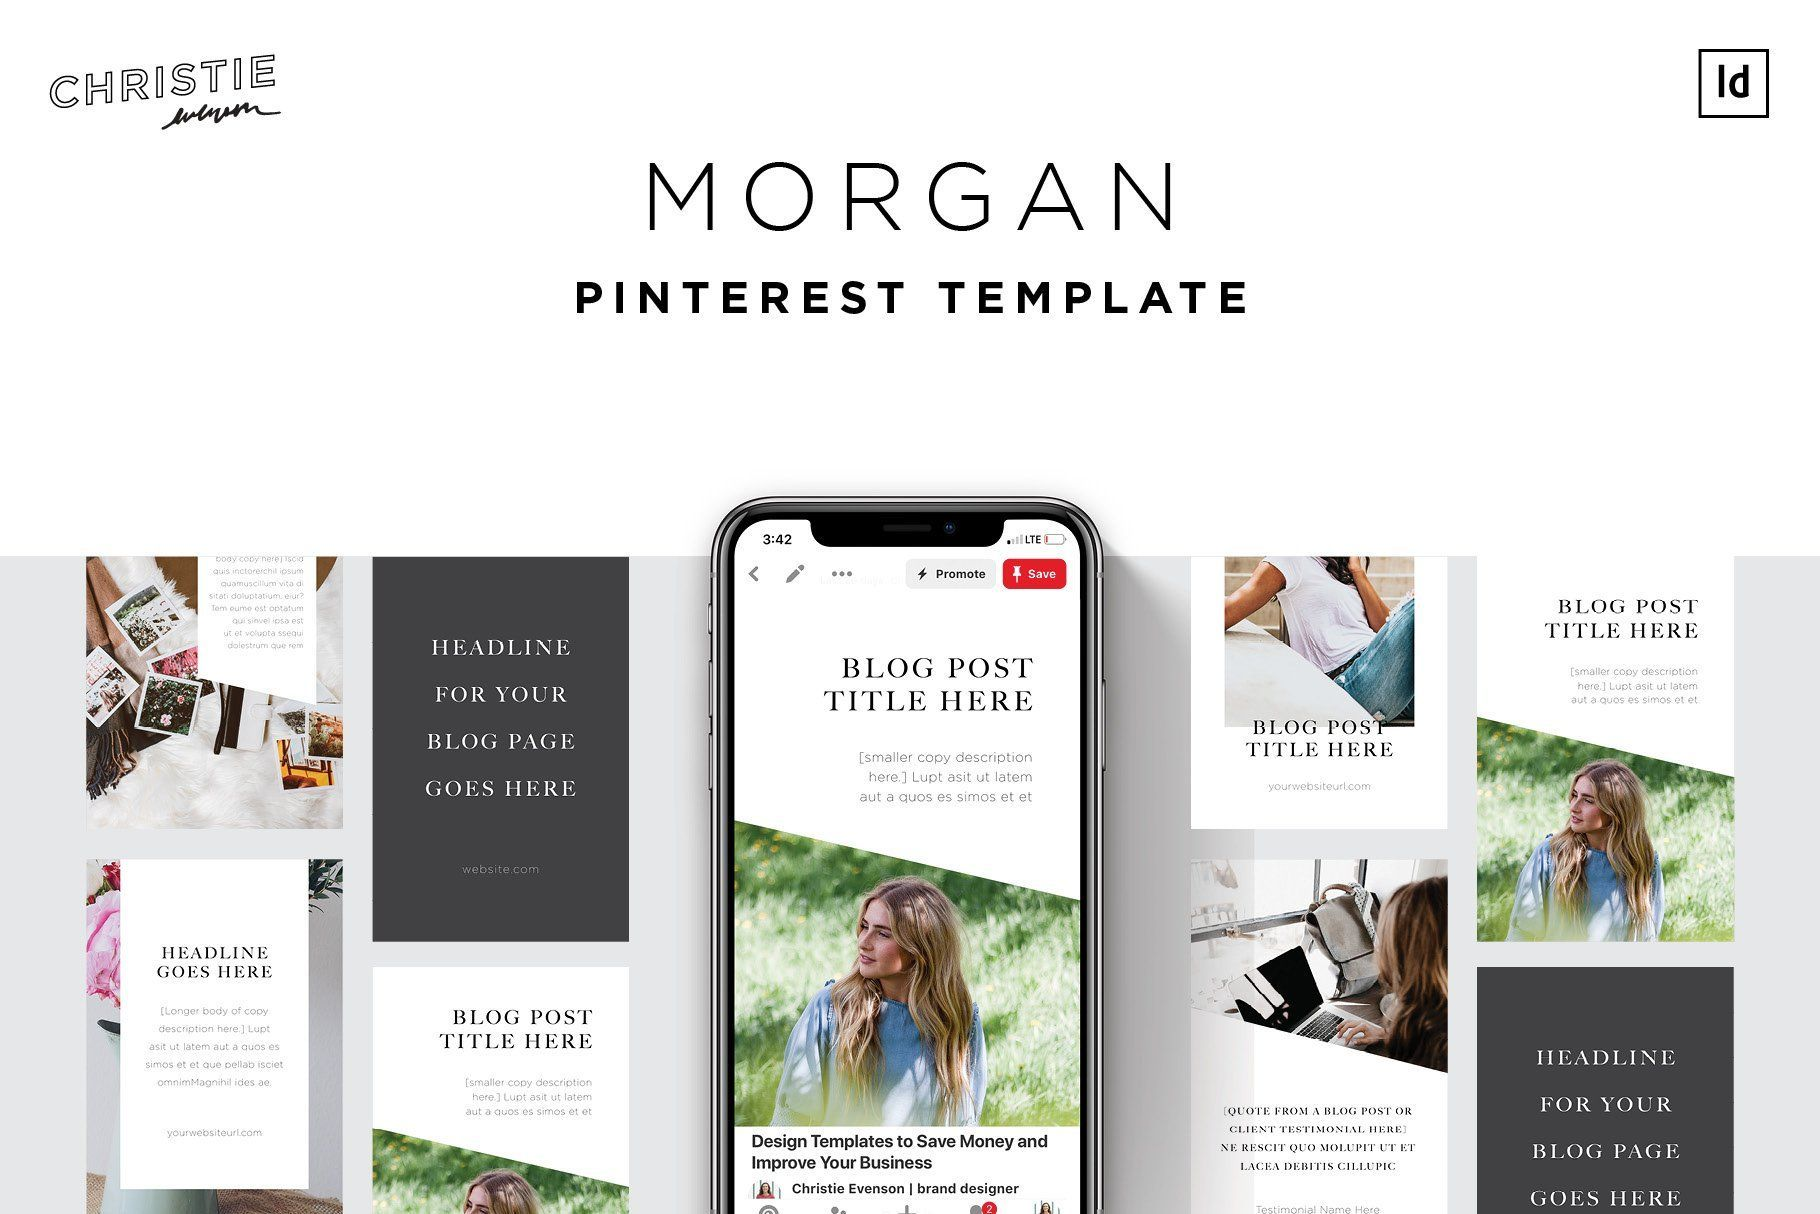 Morgan Pinterest Template With Images Pinterest Templates Pinterest Help Tutorials Social Media Template